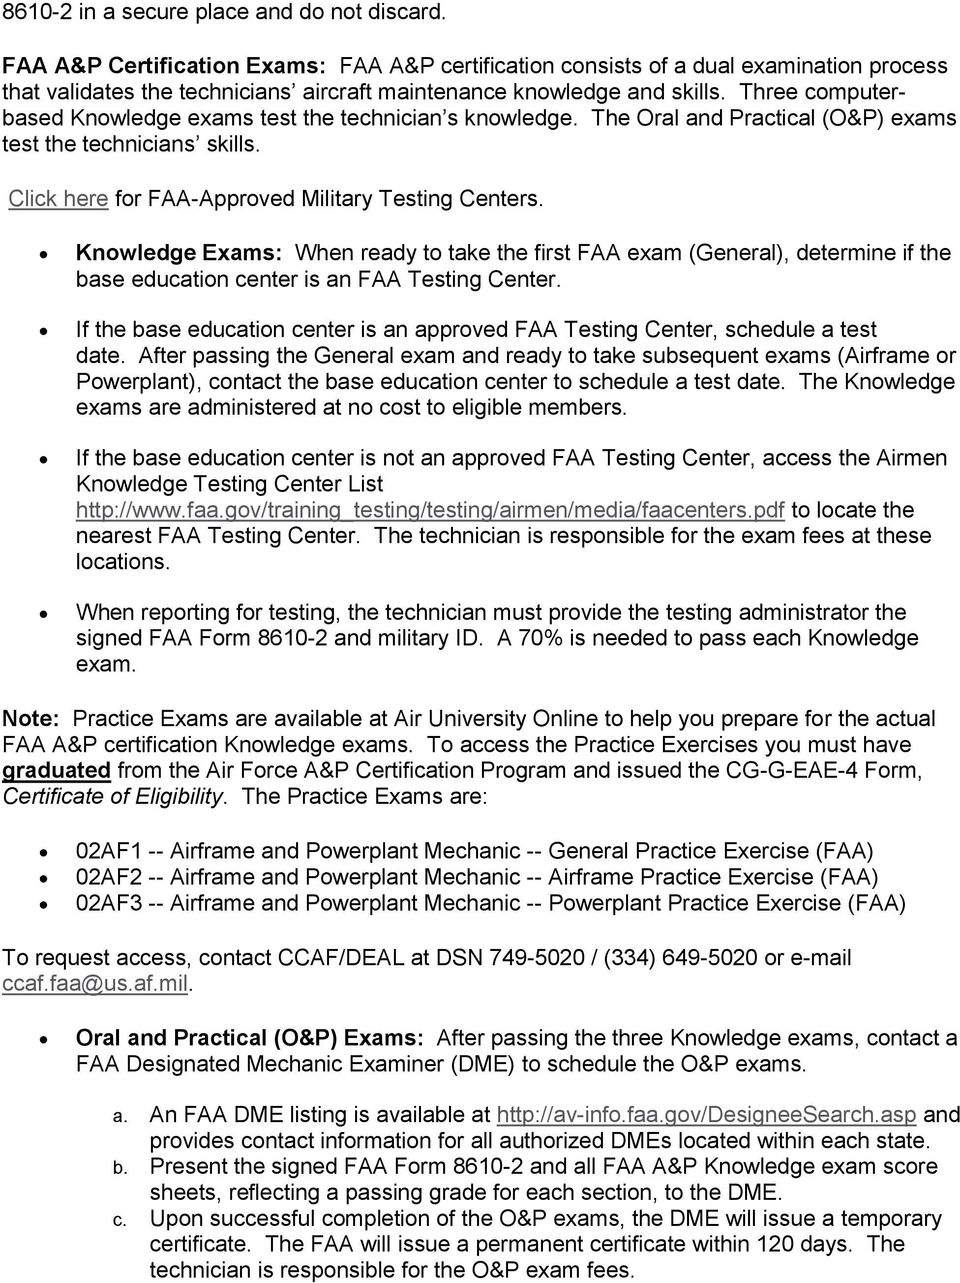 Air Force Airframe and Powerplant (A&P) Certification Program - PDF